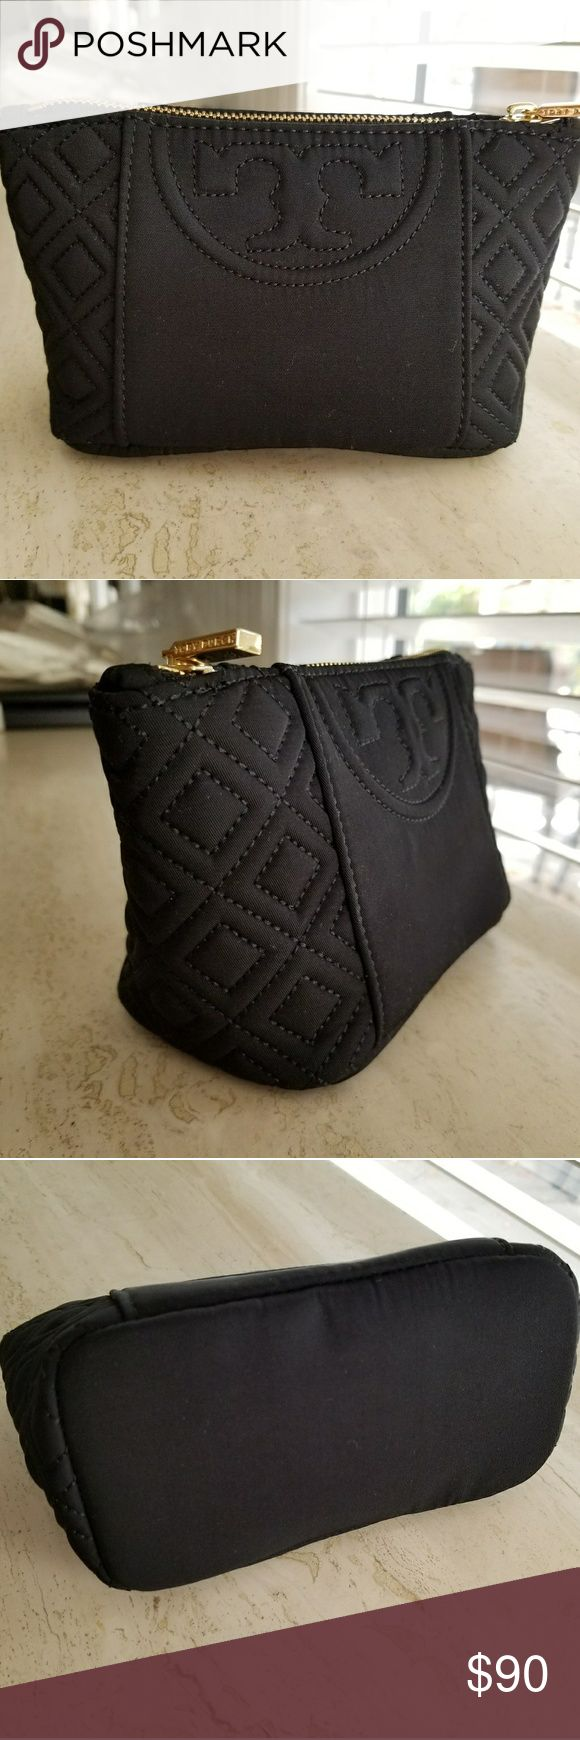 Tory Burch Cosmetic Bag Black - NEW Brand new/never used Tory Burch small cosmetic bag in black fabric.  Always stored properly and stuffed to hold it's shape. Tory Burch Bags Cosmetic Bags & Cases